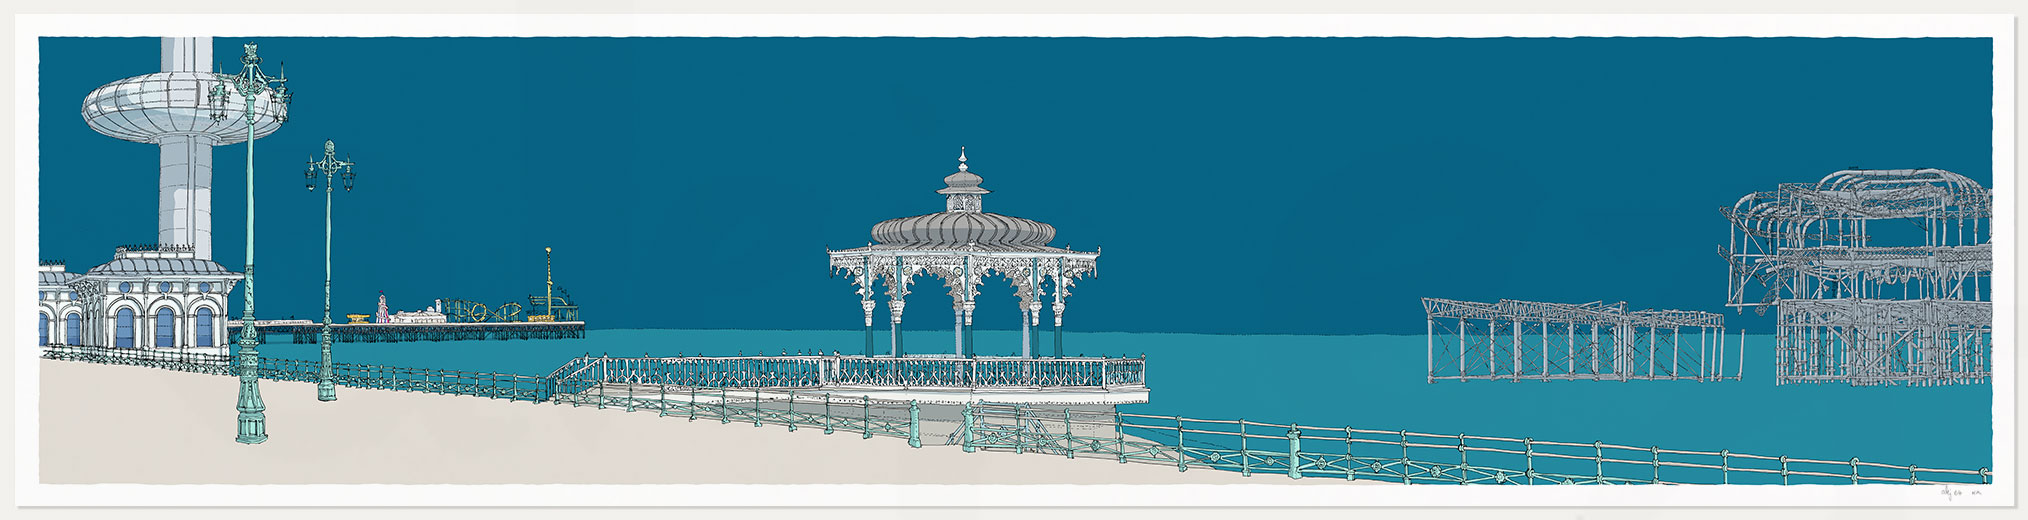 print named I360 Palace Pier Bandstand and West Pier Ocean Blue by artist alej ez